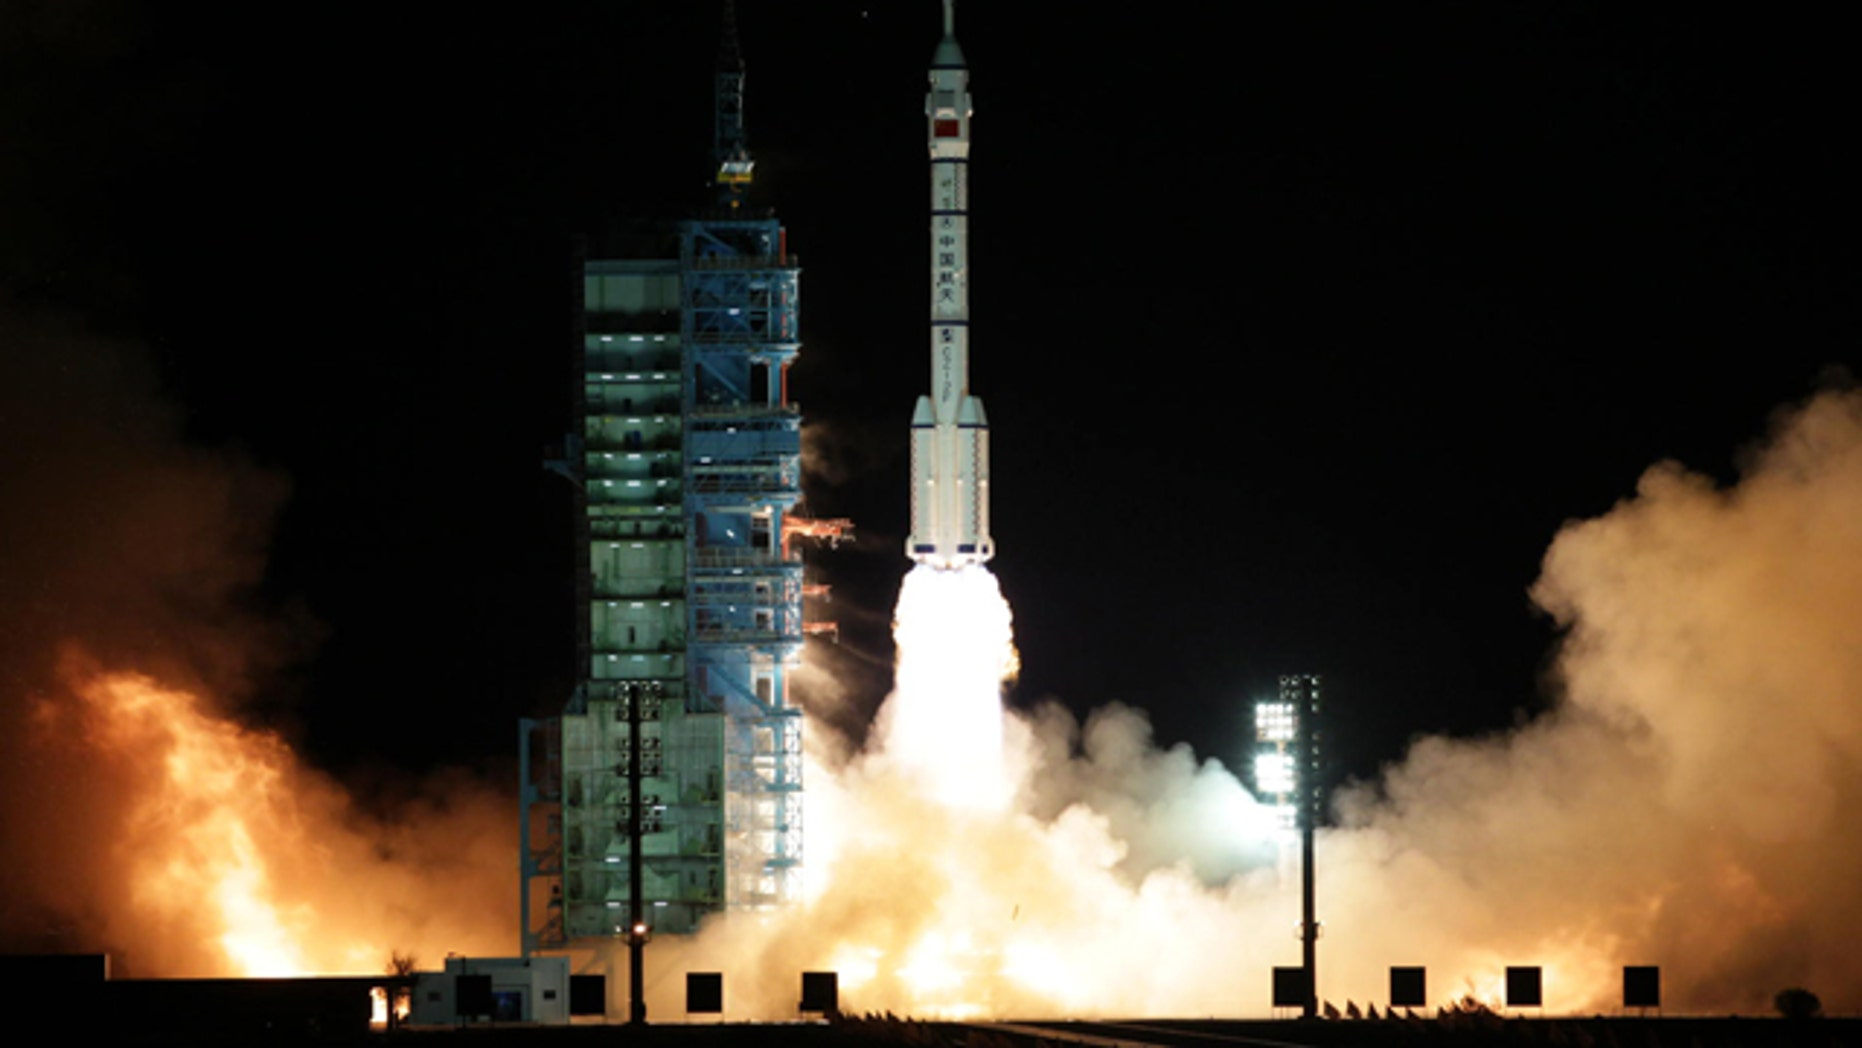 Nov. 1, 2011: A modified model of the Long March CZ-2F rocket carrying the unmanned spacecraft Shenzhou-8 blasts off from the launch pad at the Jiuquan Satellite Launch Center in northwest China's Gansu Province, the Chinese state media reported. It is the latest step in what will be a decade-long effort by China to place a manned permanent space station in orbit.